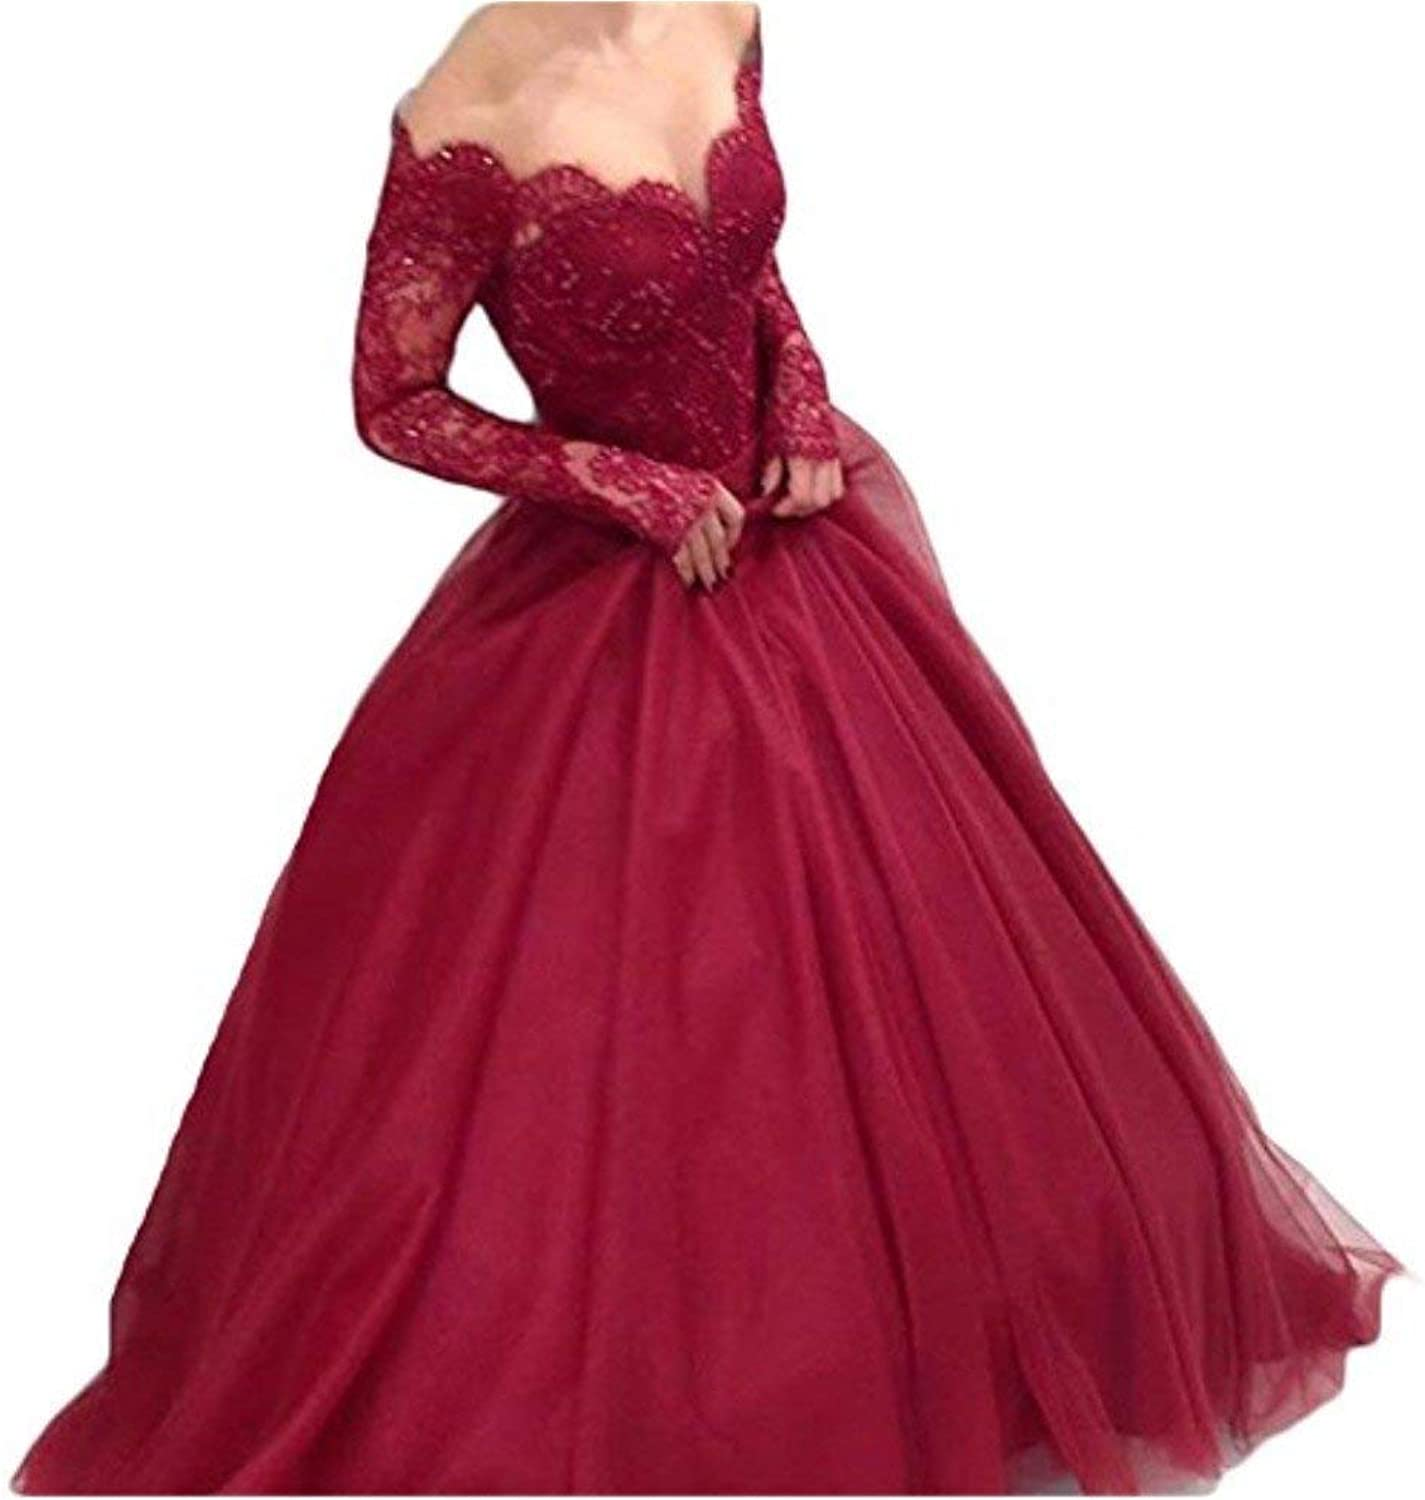 Darcy74Dulles Women's Off Shoulder Lace Prom Dress Long Sleeves Ball Gown for Bride